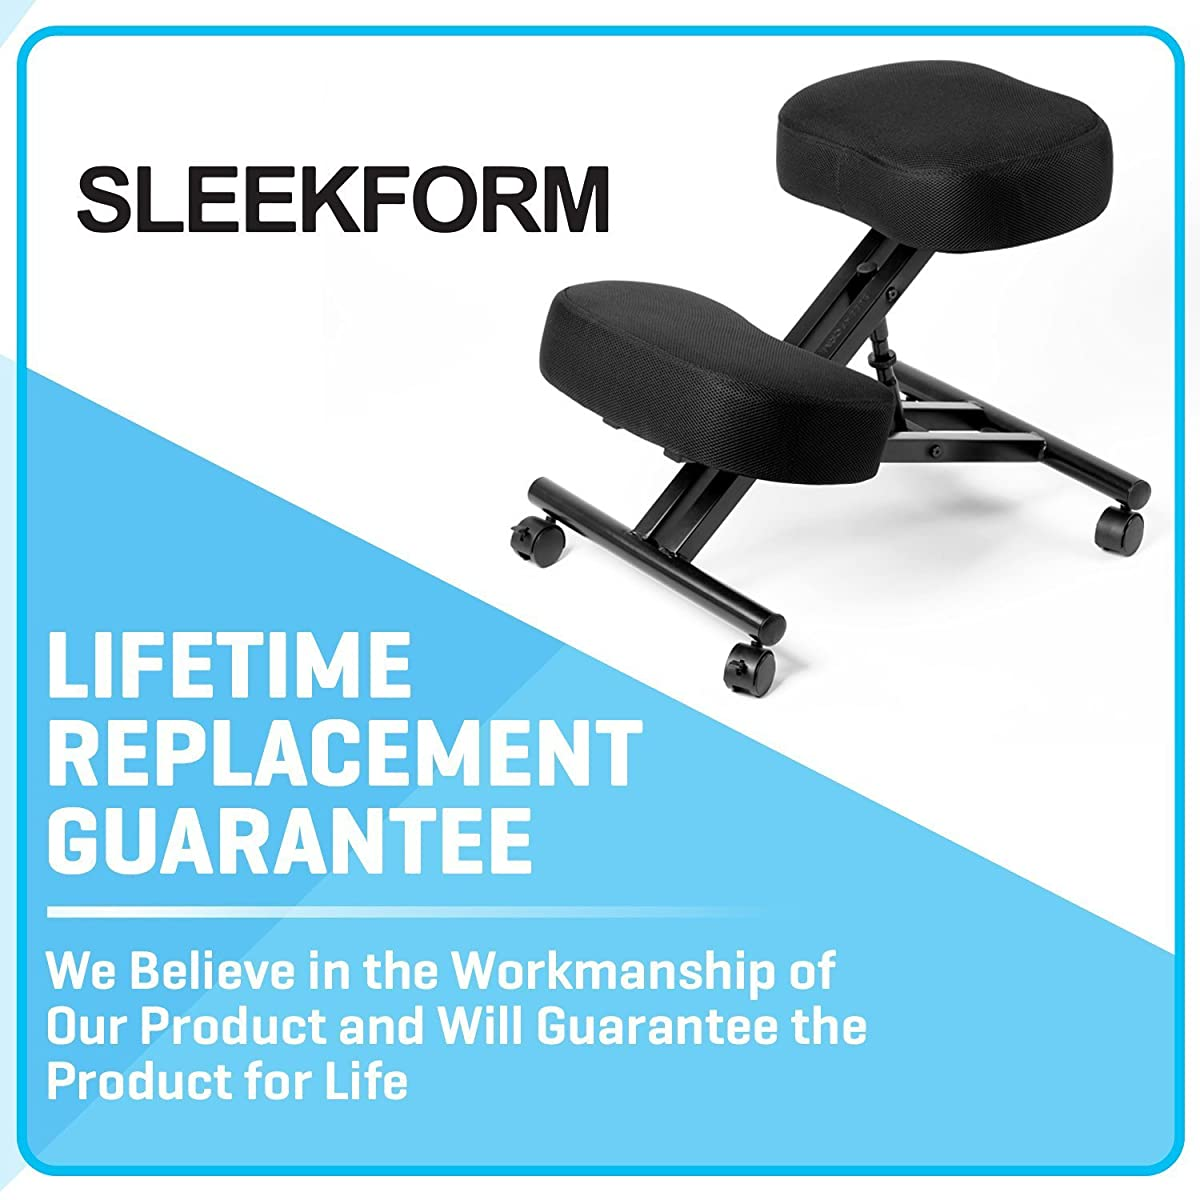 "Sleekform Kneeling Chair for Perfect Posture | Ergonomic Knee Stool Relieving Back & Neck Pain | Adjustable Height, Rolling Wheels & Washable Mesh for Office & Home | 4"" Soft & Comfortable Cushions"